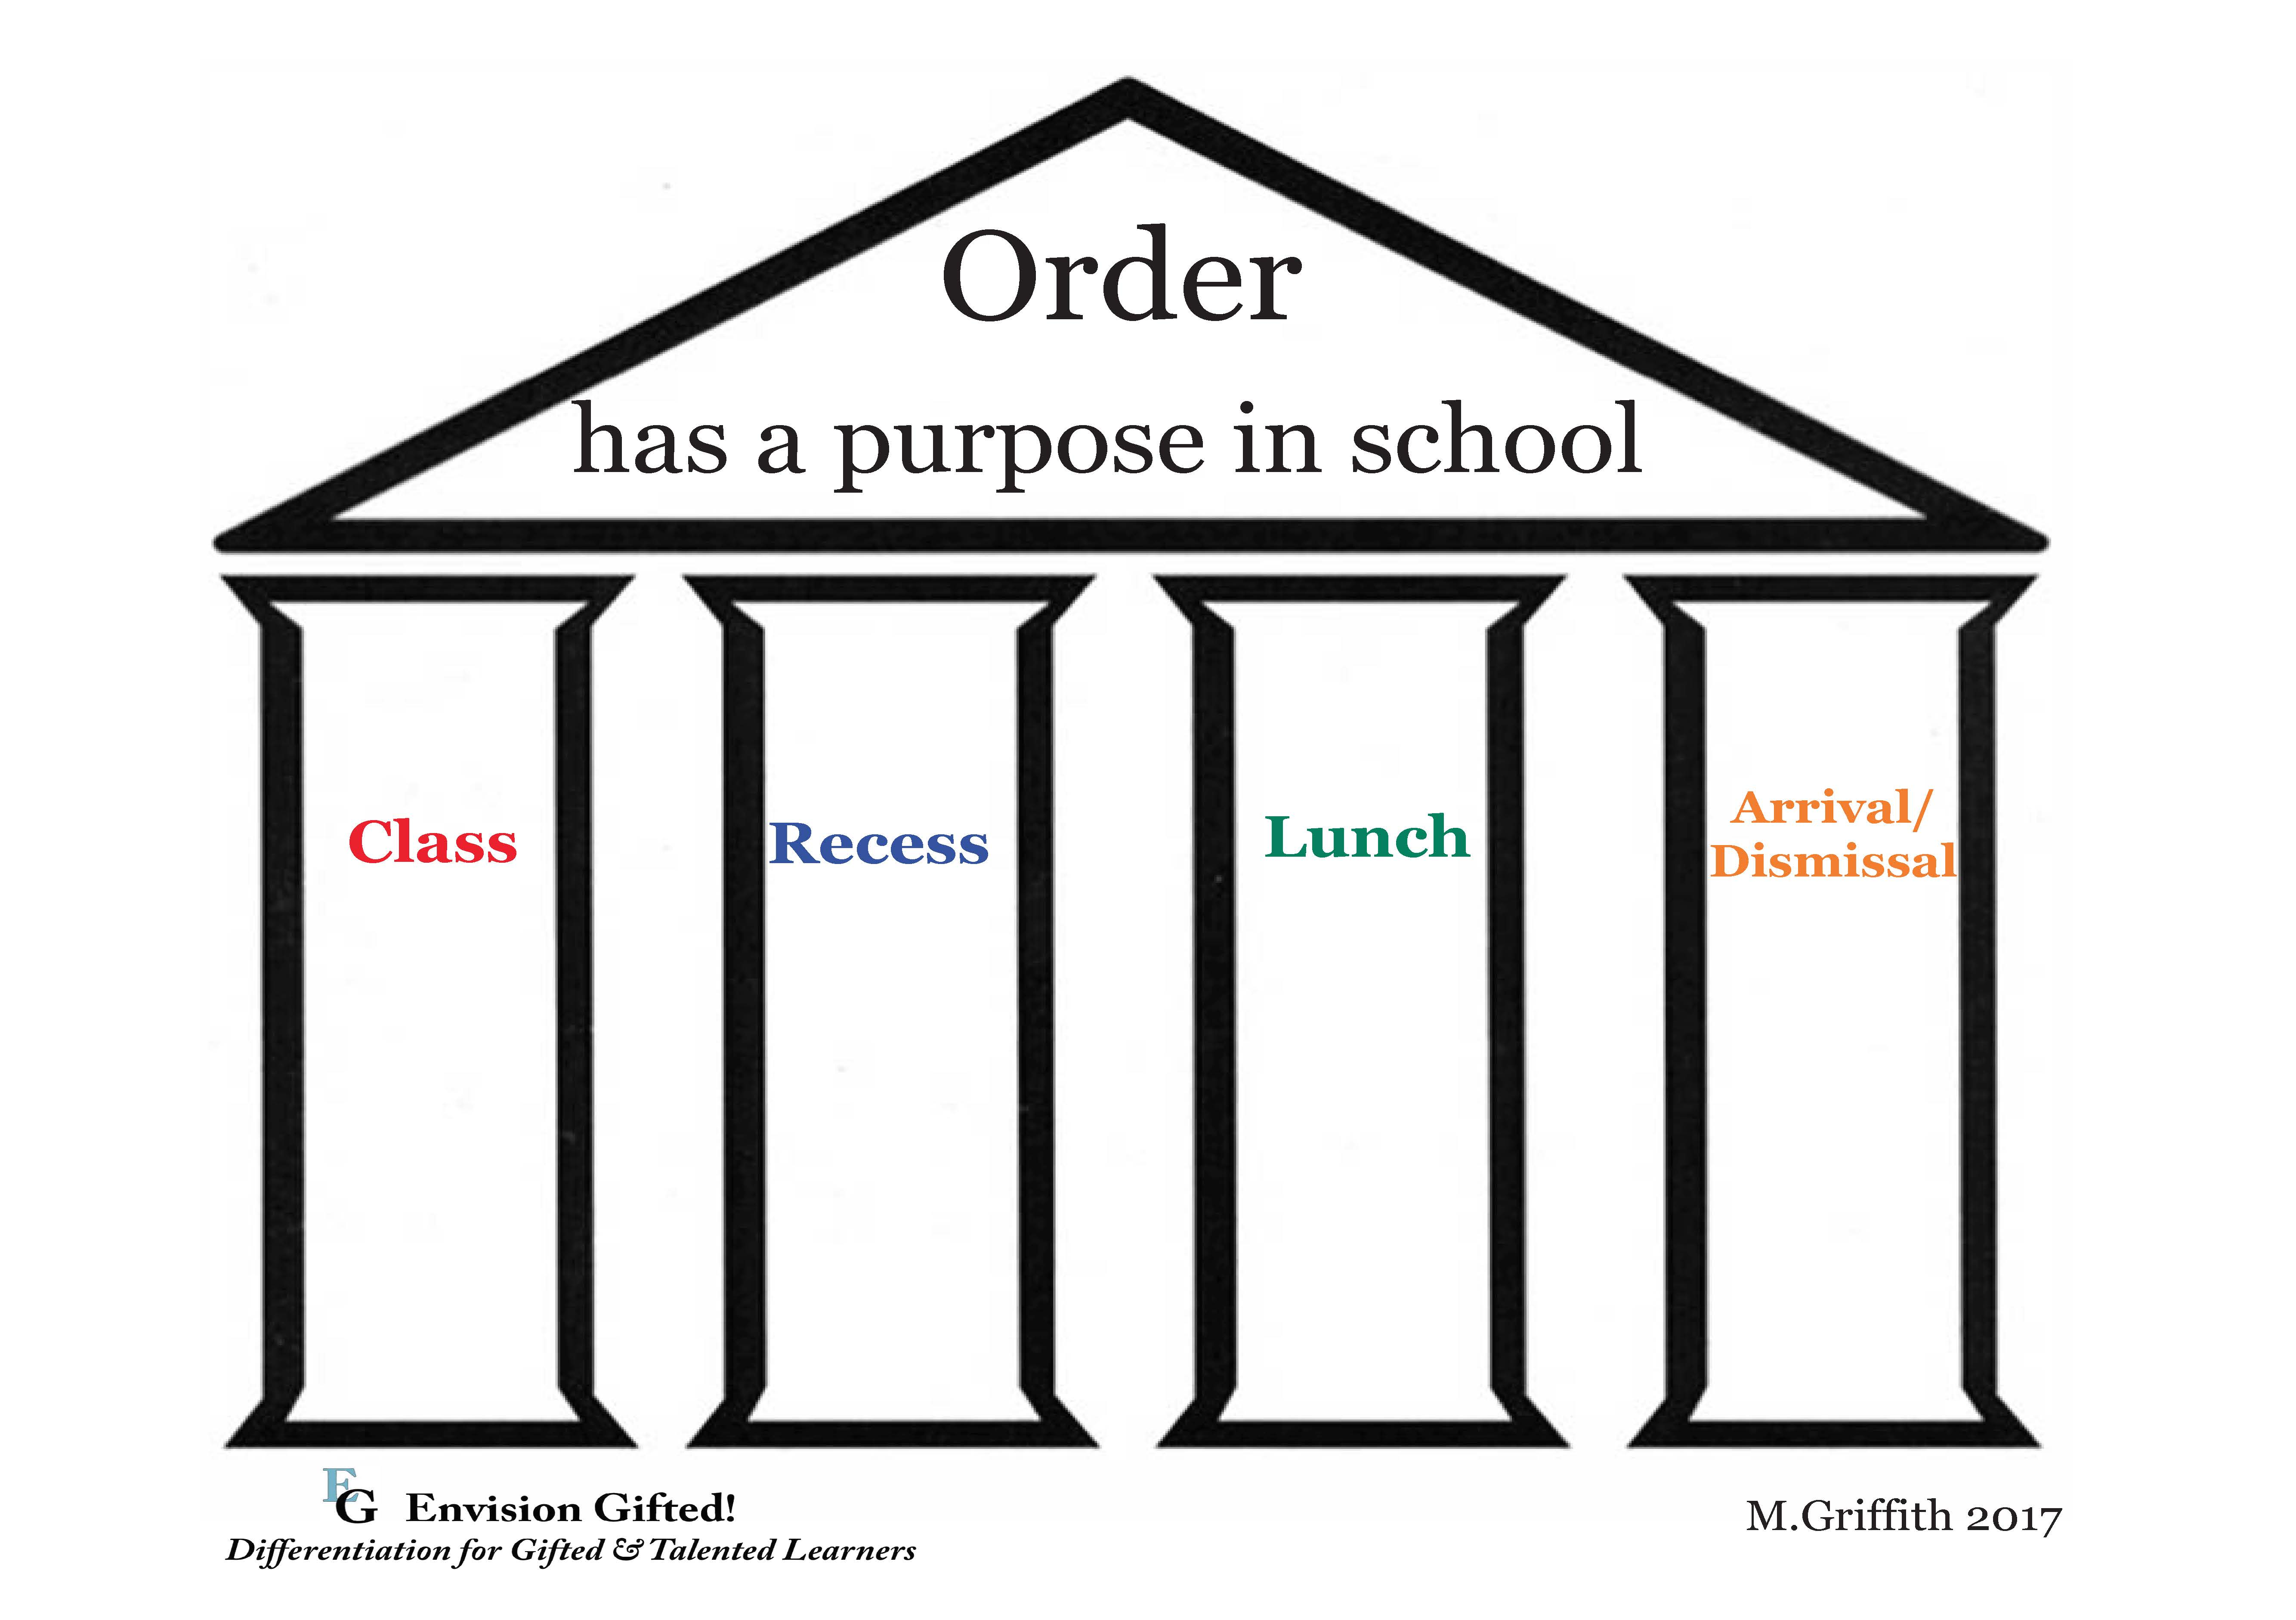 Envision Gifted. Universal Concept Order in School